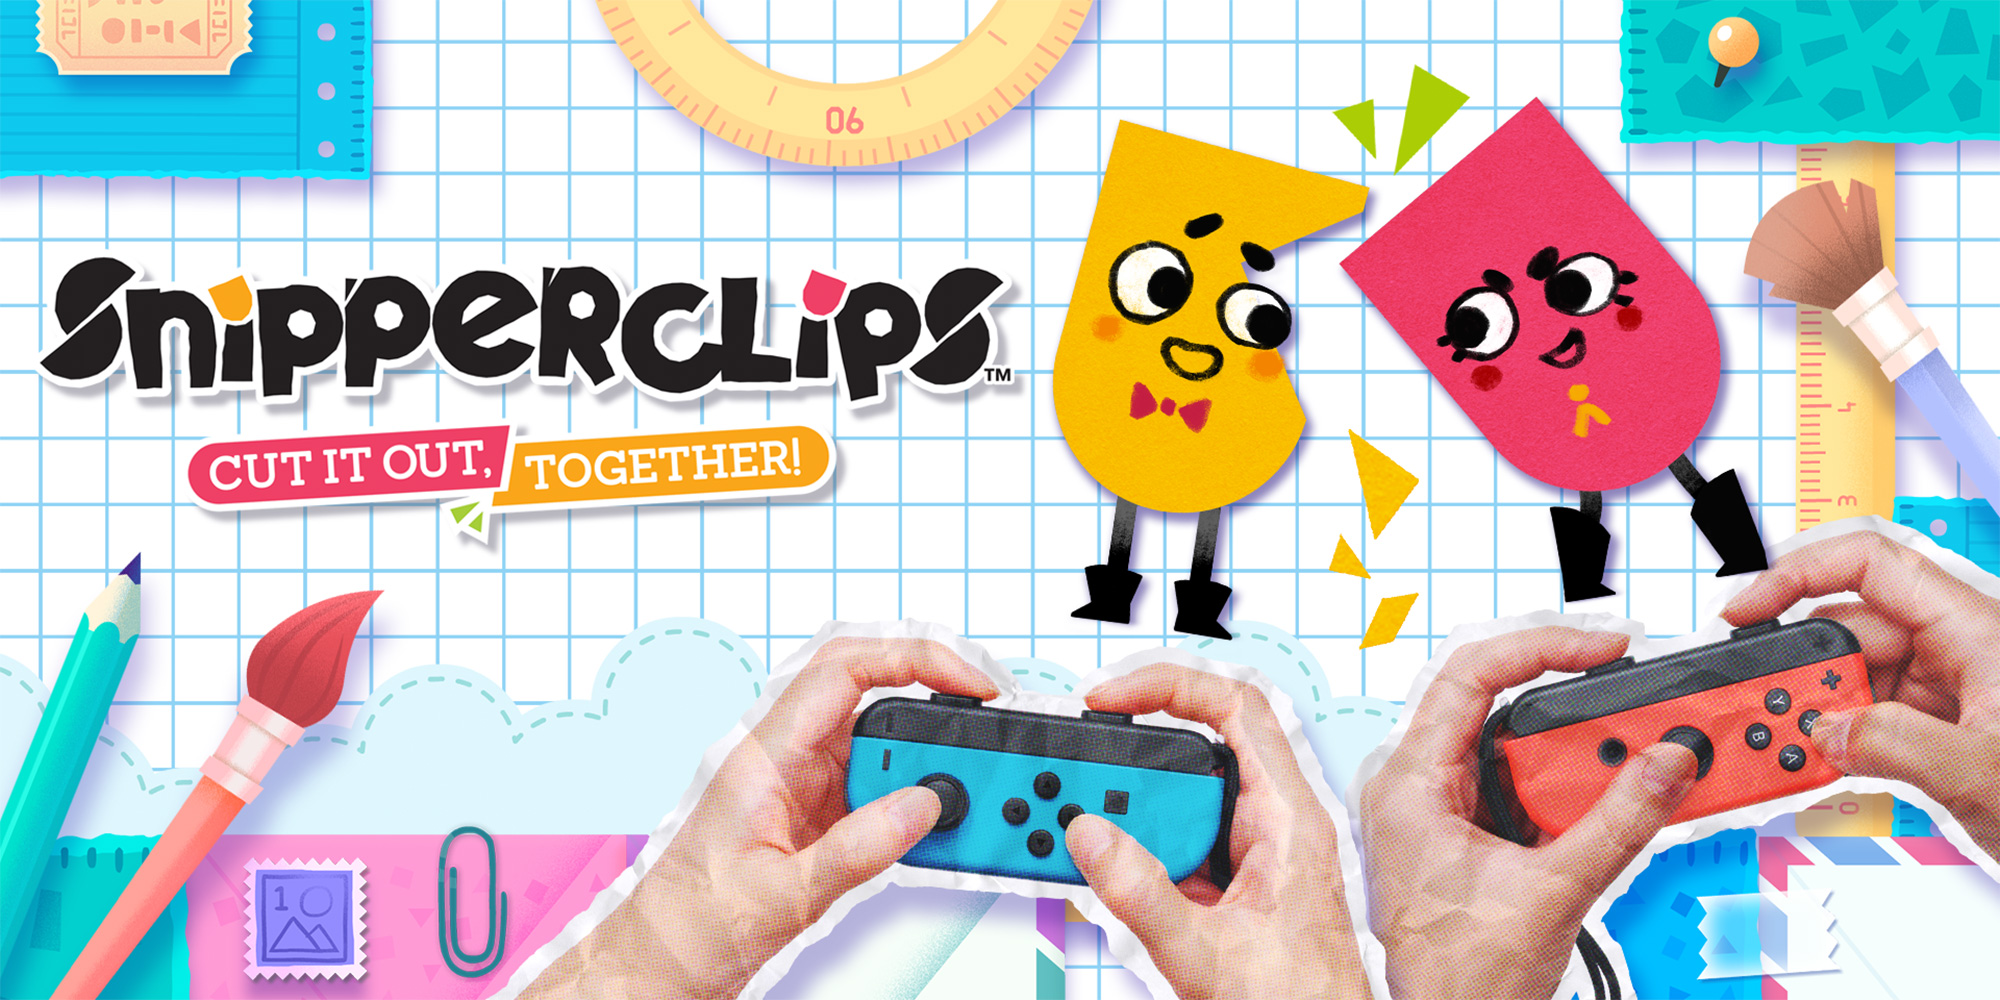 Box art - Snipperclips